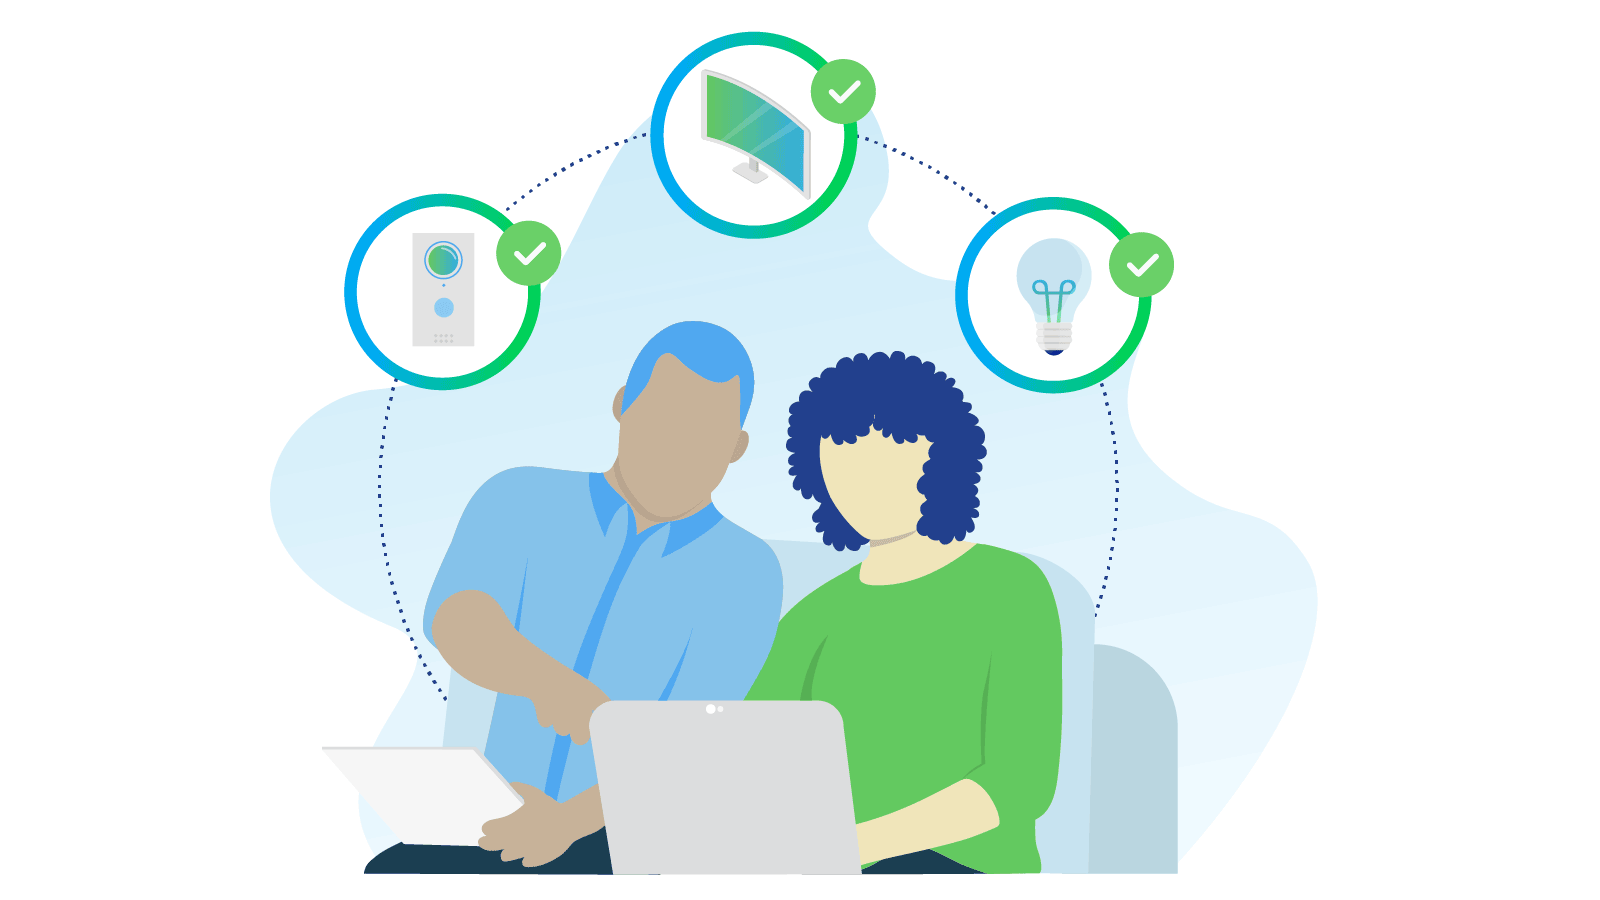 Couple setting up smart routines for electronics